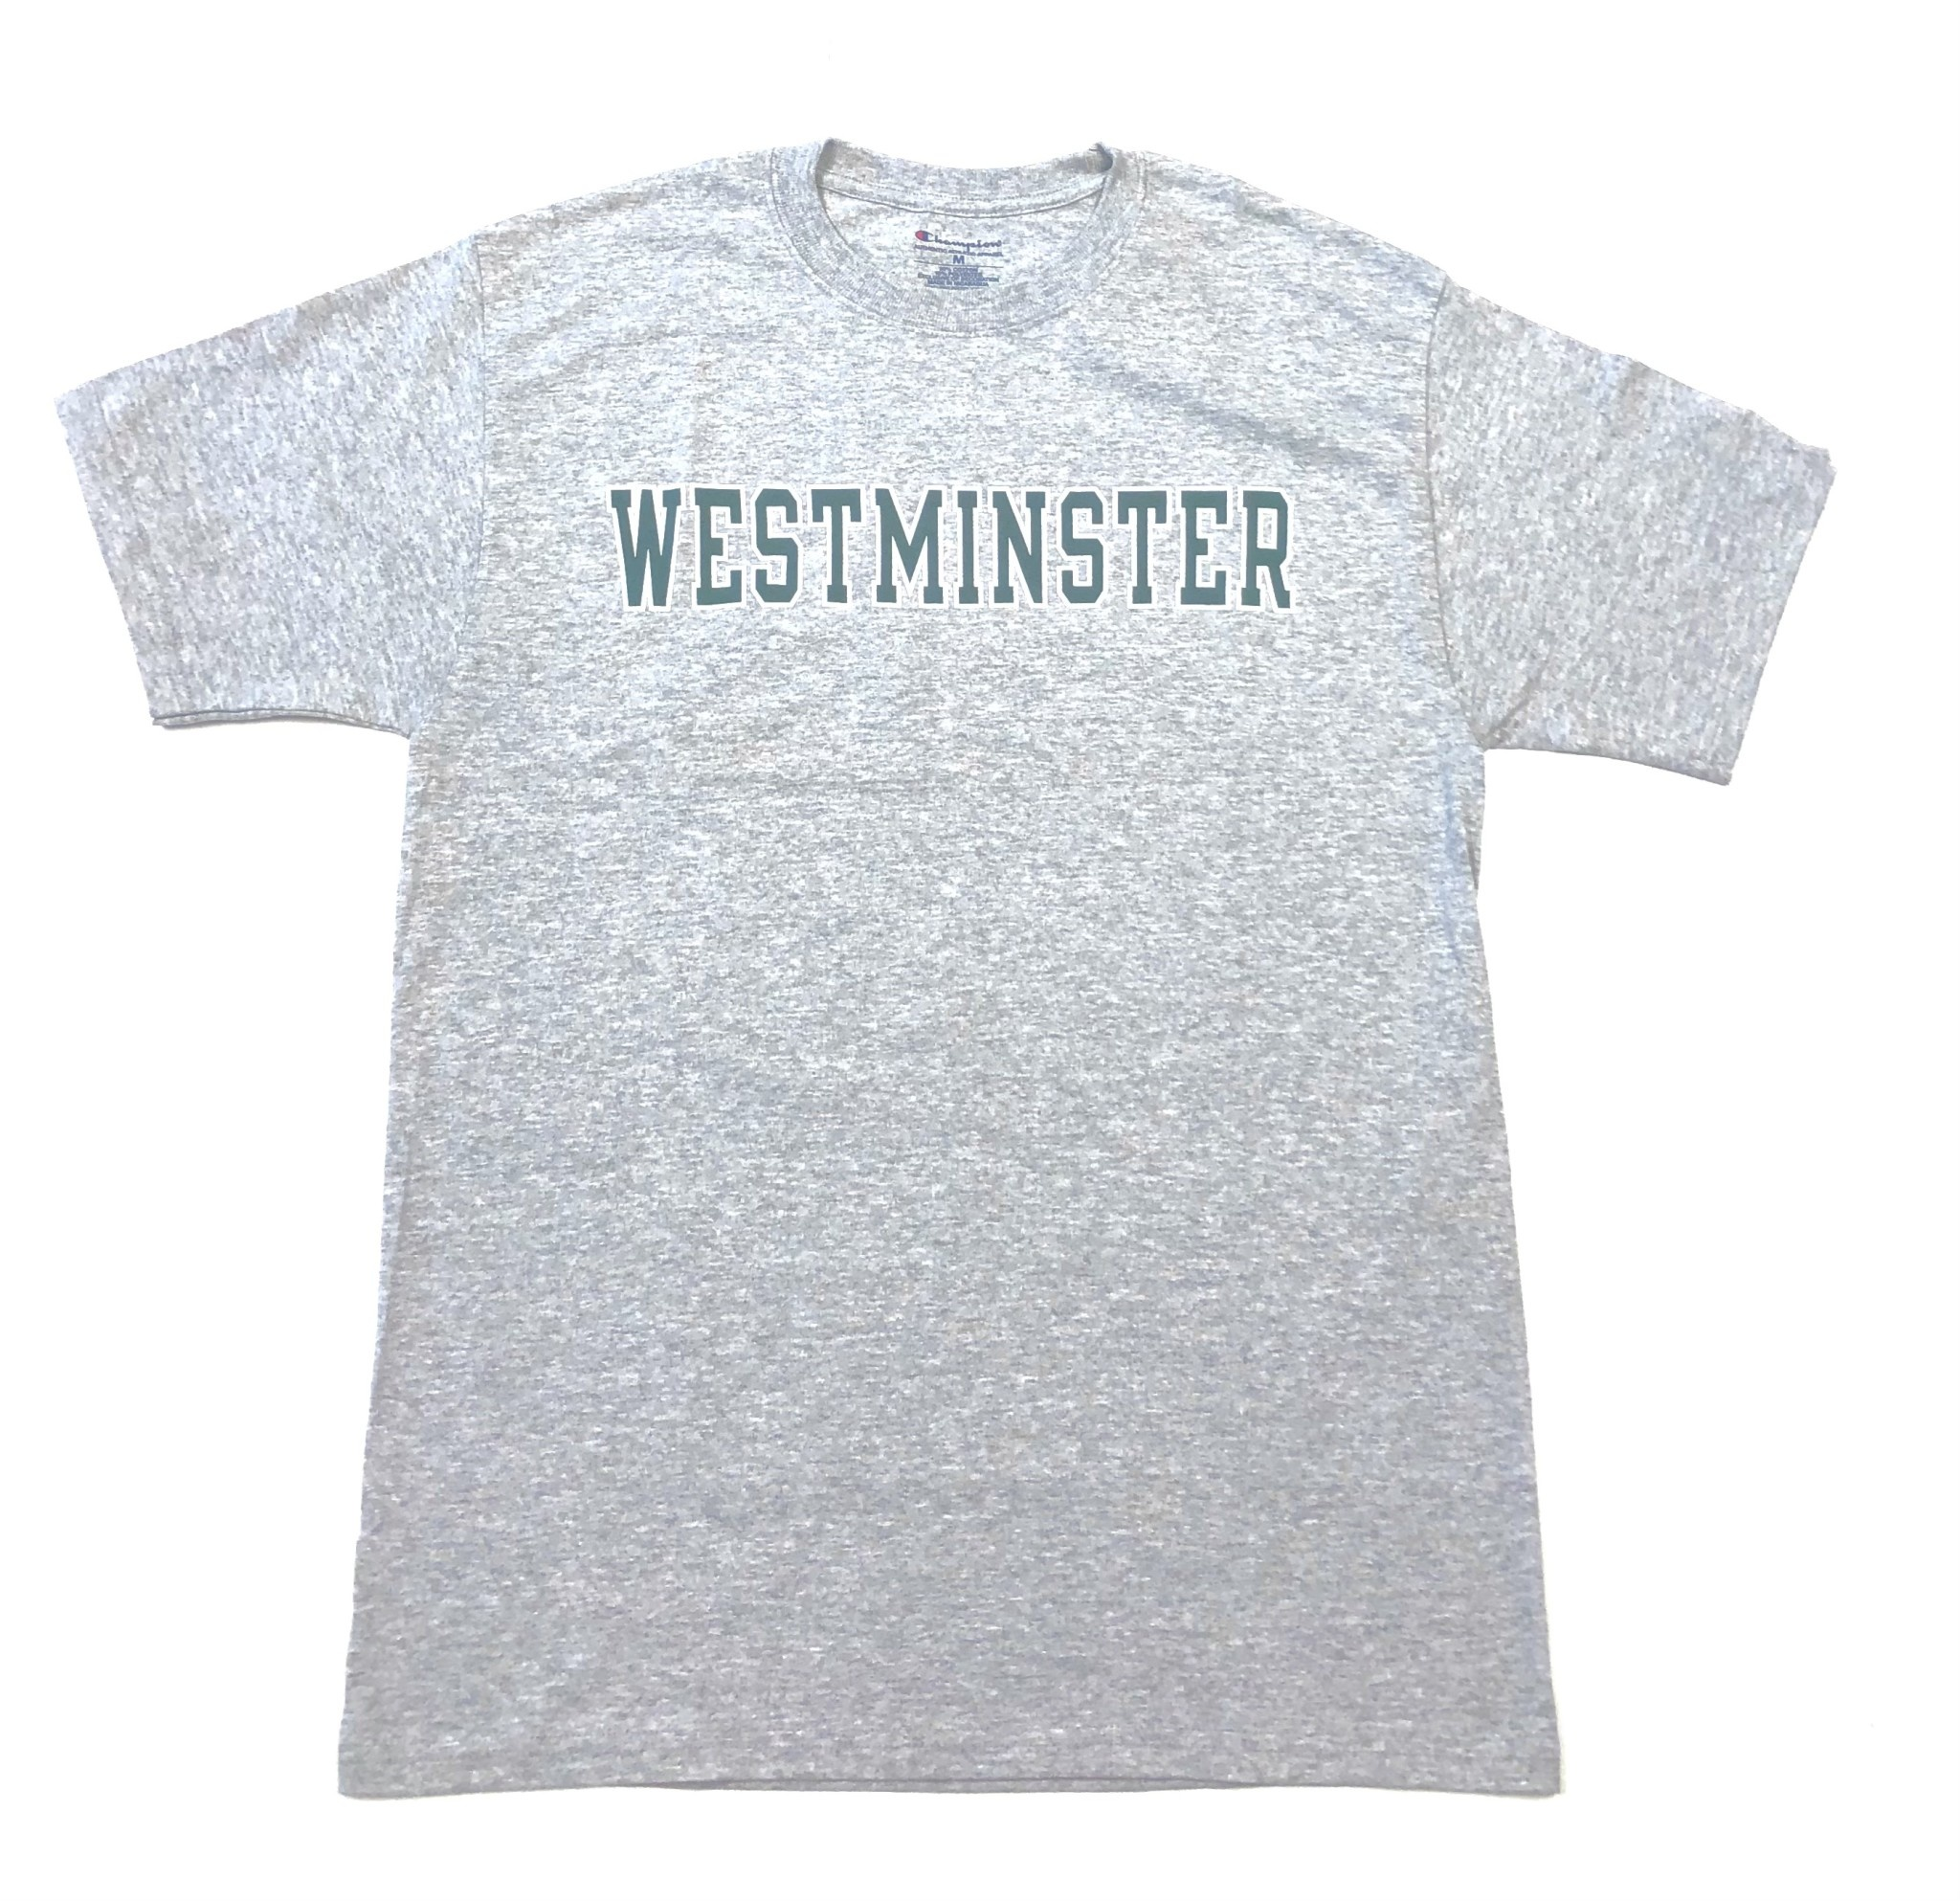 Champion T: Champion Westminster Gray